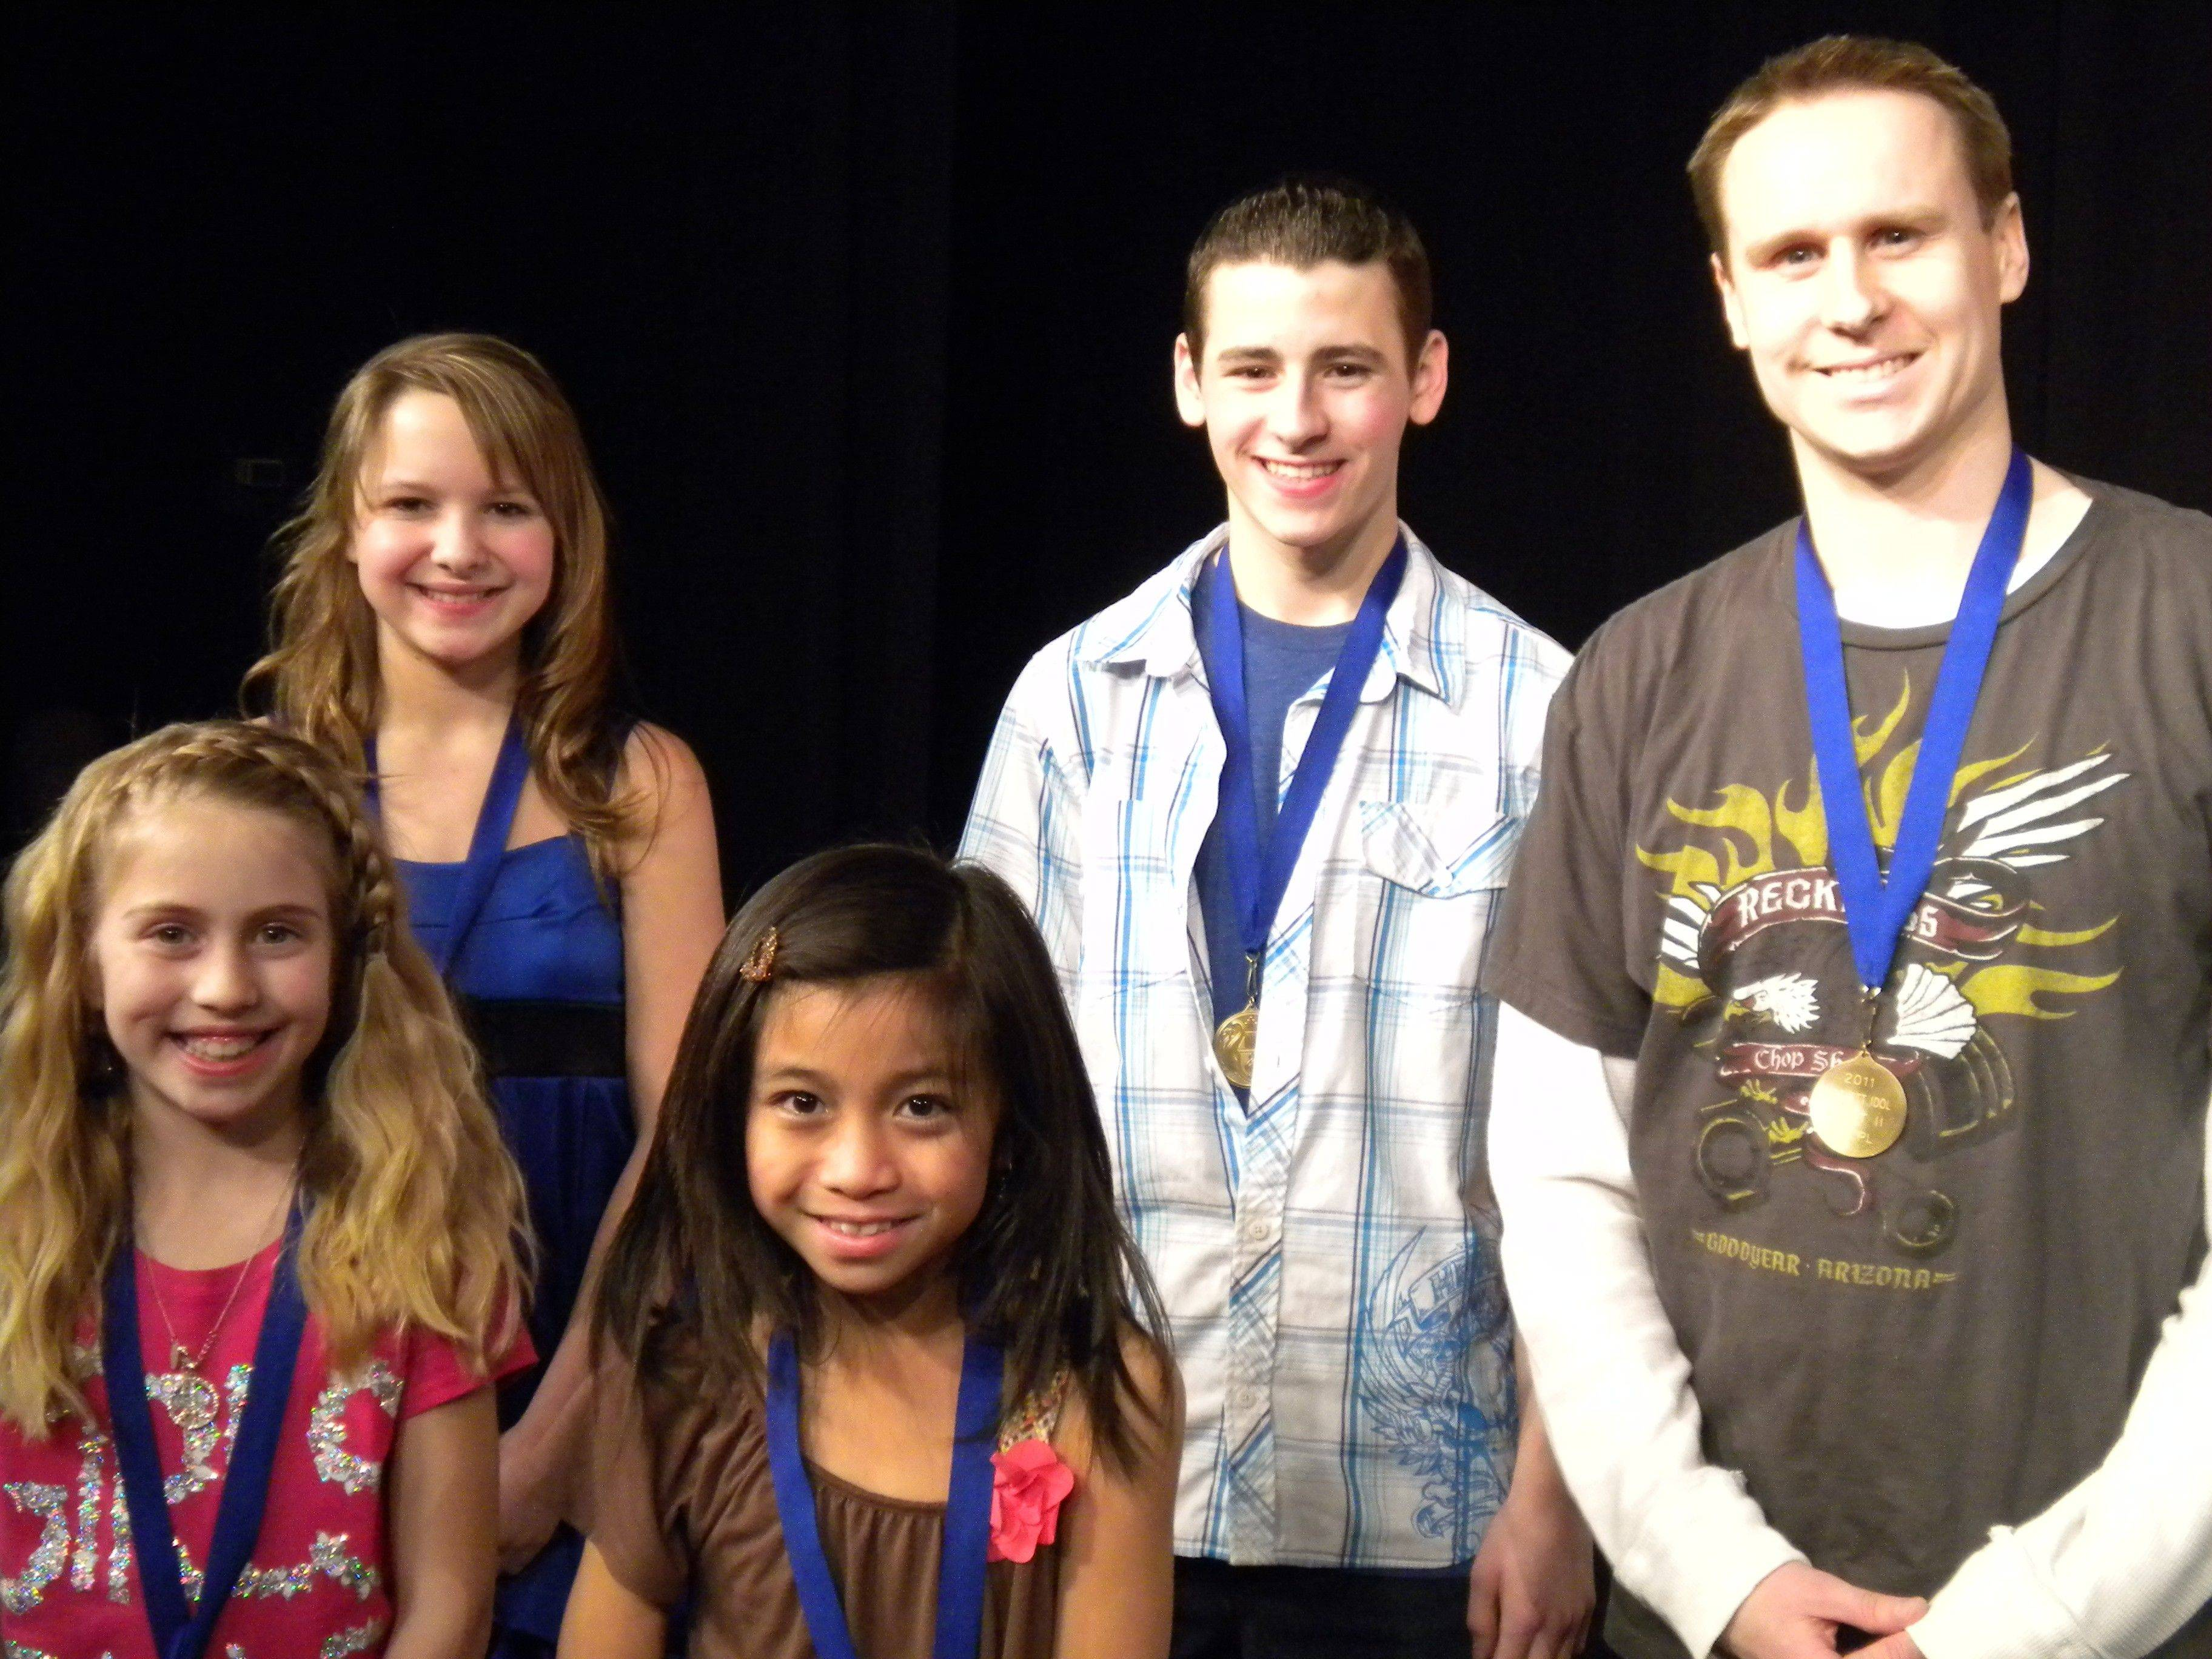 The 2011 Bartlett Idol winners, from left, are: Front row: Alyssa Harvey and Jillian Zaguirre; and back row: Molli Miller, Nicholas Petrelli, and Austin Hopkins all of Bartlett.